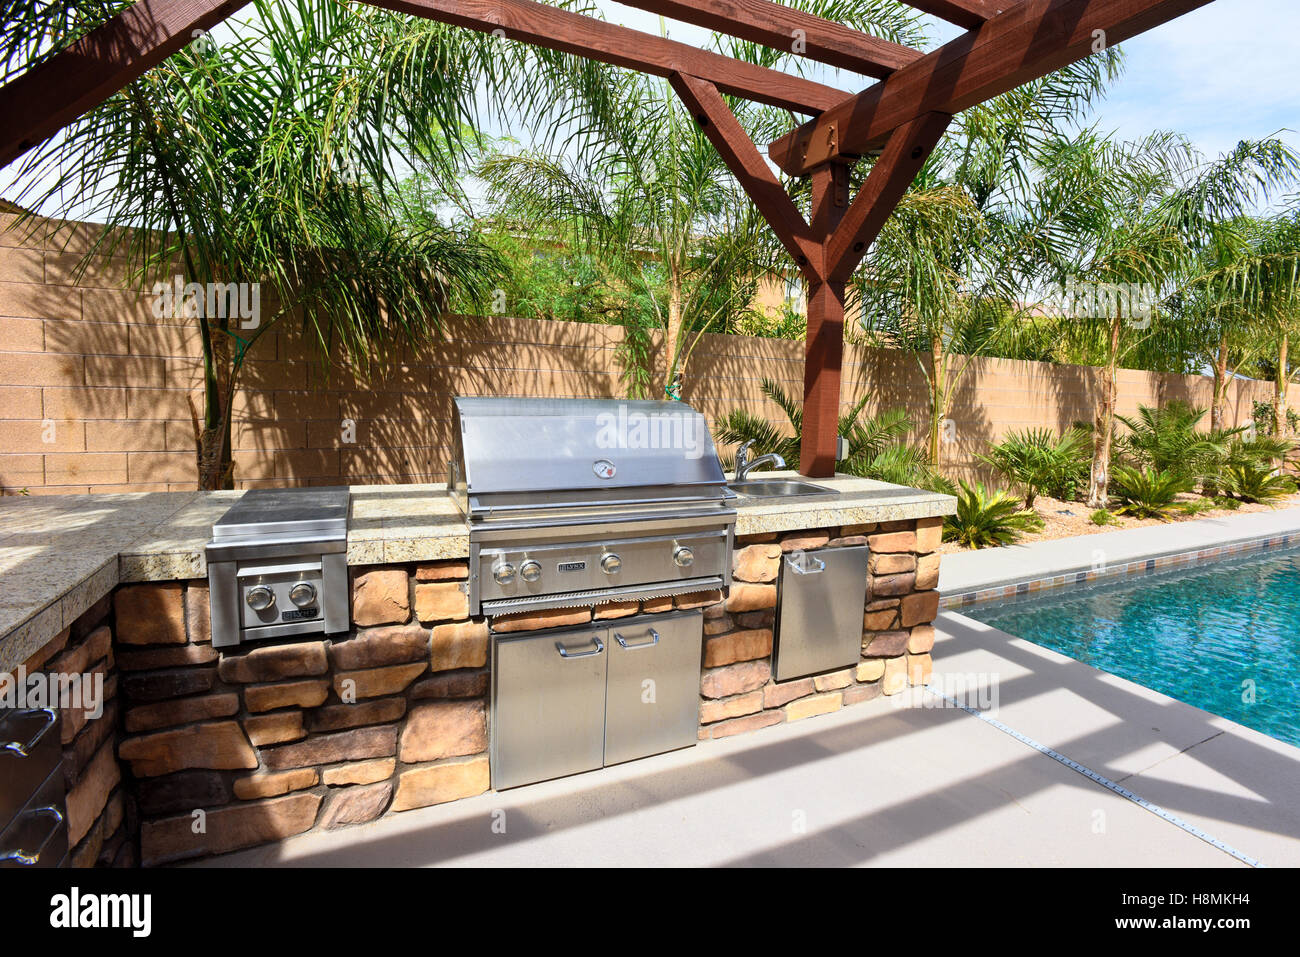 Exceptional Modest Residential American Southwest Backyard With Pool And Barbecue Grill    Stock Image